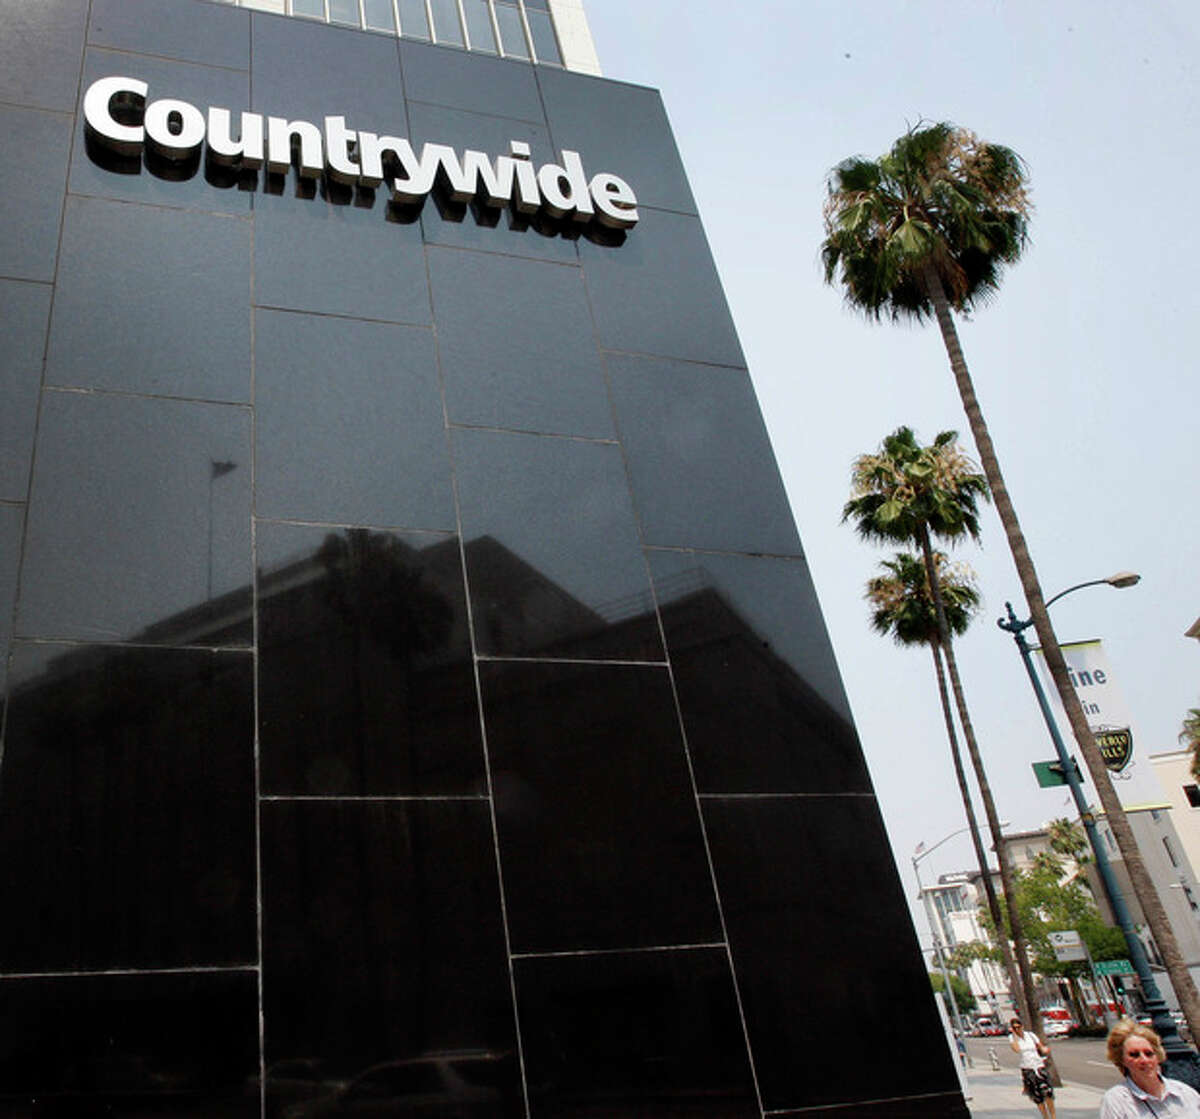 FILE - This June 25, 2008, file photo, shows the Countrywide Financial Corp. office in Beverly Hills, Calif. The former corporation, whose subprime loans helped start the nation's foreclosure crisis, made hundreds of discount loans to buy influence with members of Congress, congressional staff, top government officials and executives of troubled mortgage giant Fannie Mae, according to a Congressional House report. (AP Photo/Kevork Djansezian, File)